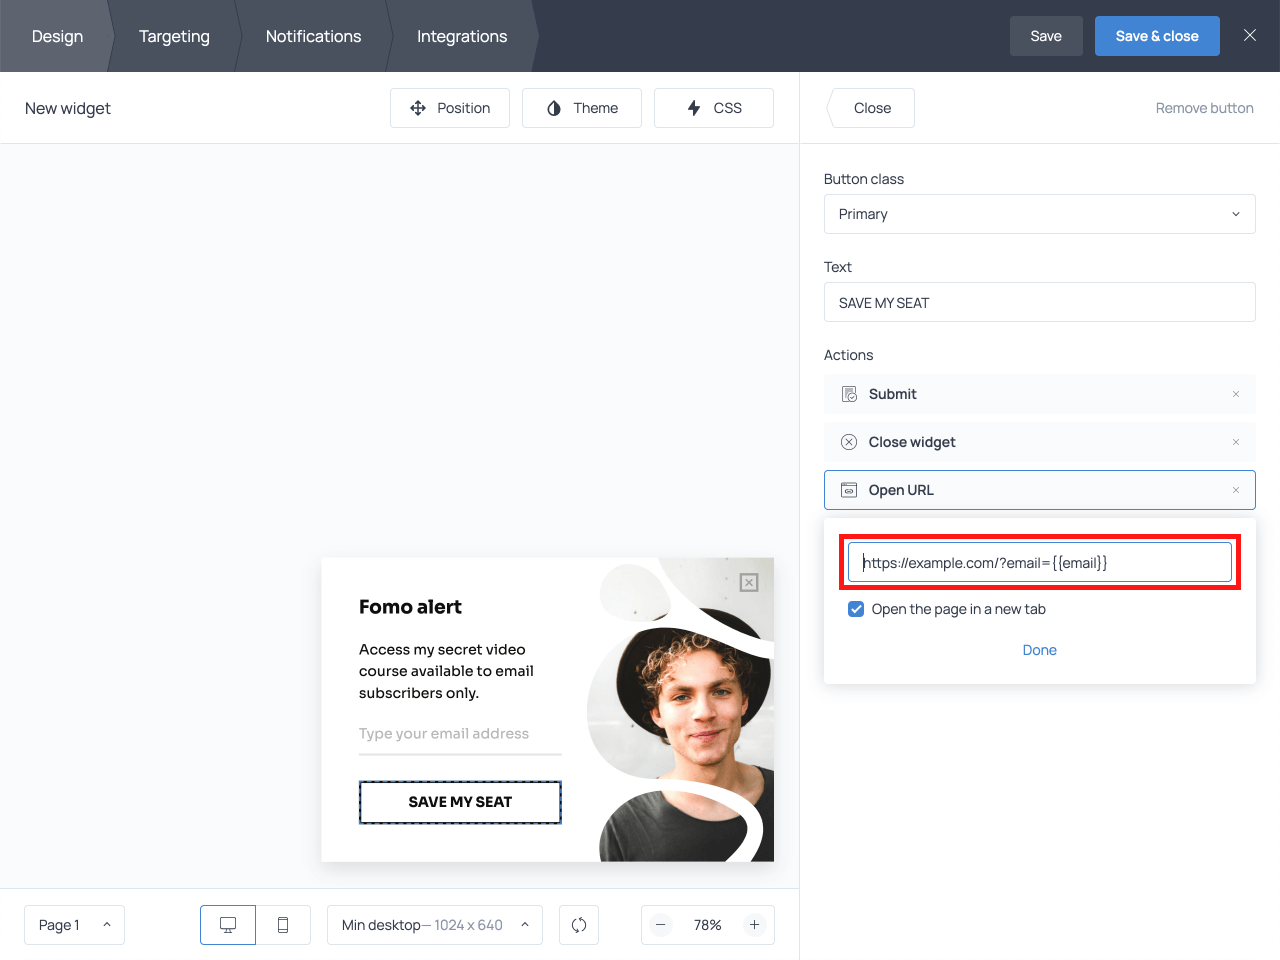 Email form field in the Open URL action